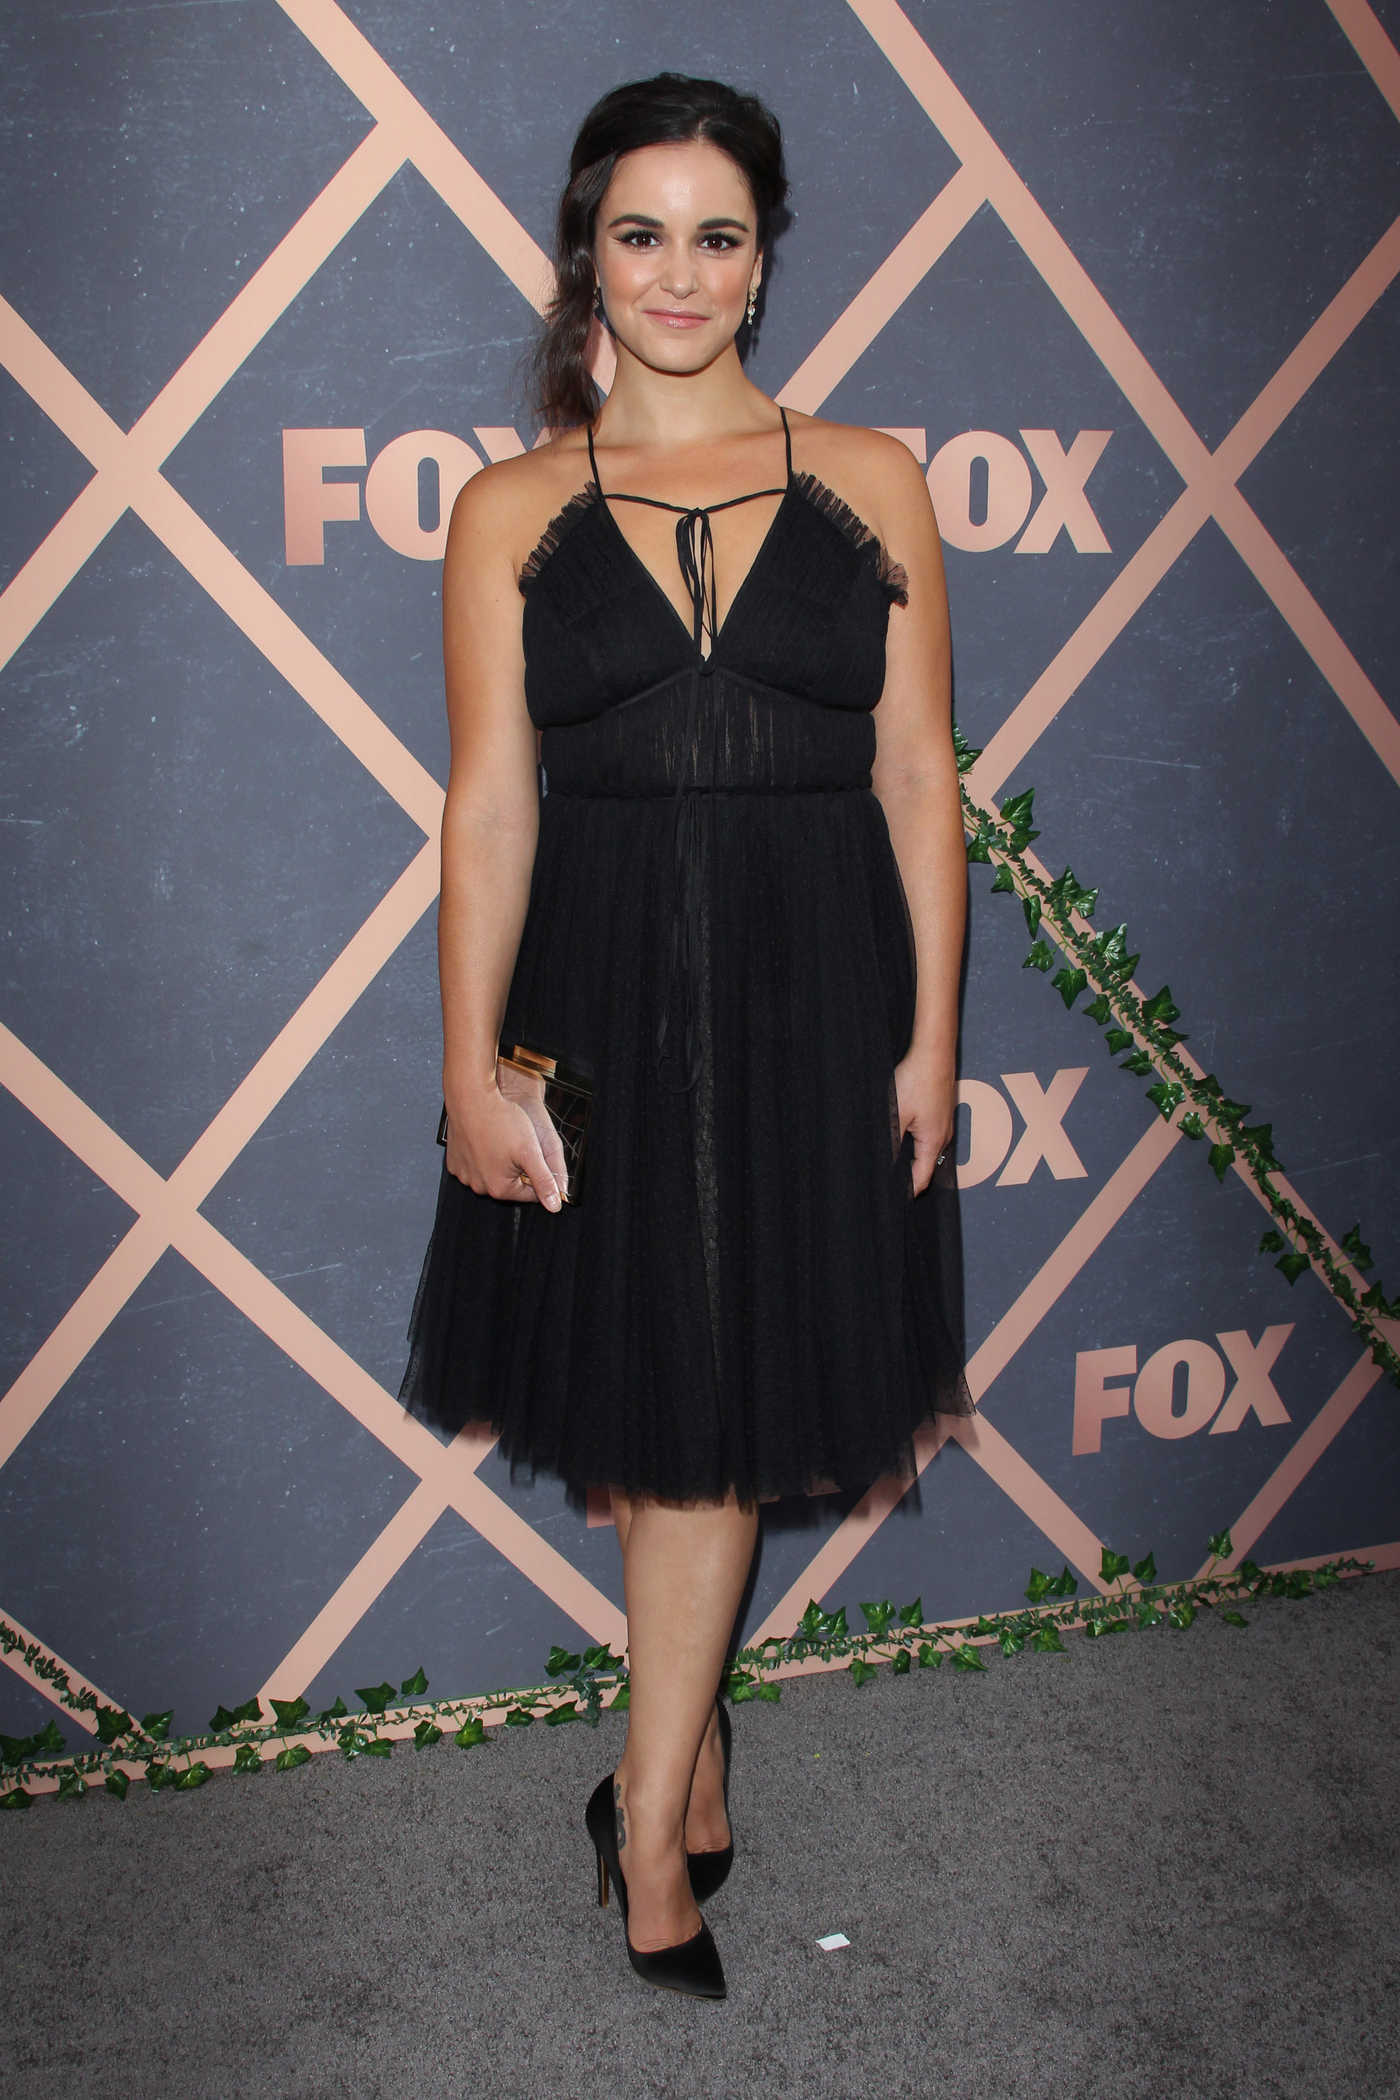 Melissa Fumero Attends the FOX Fall Party in LA 09/25/2017